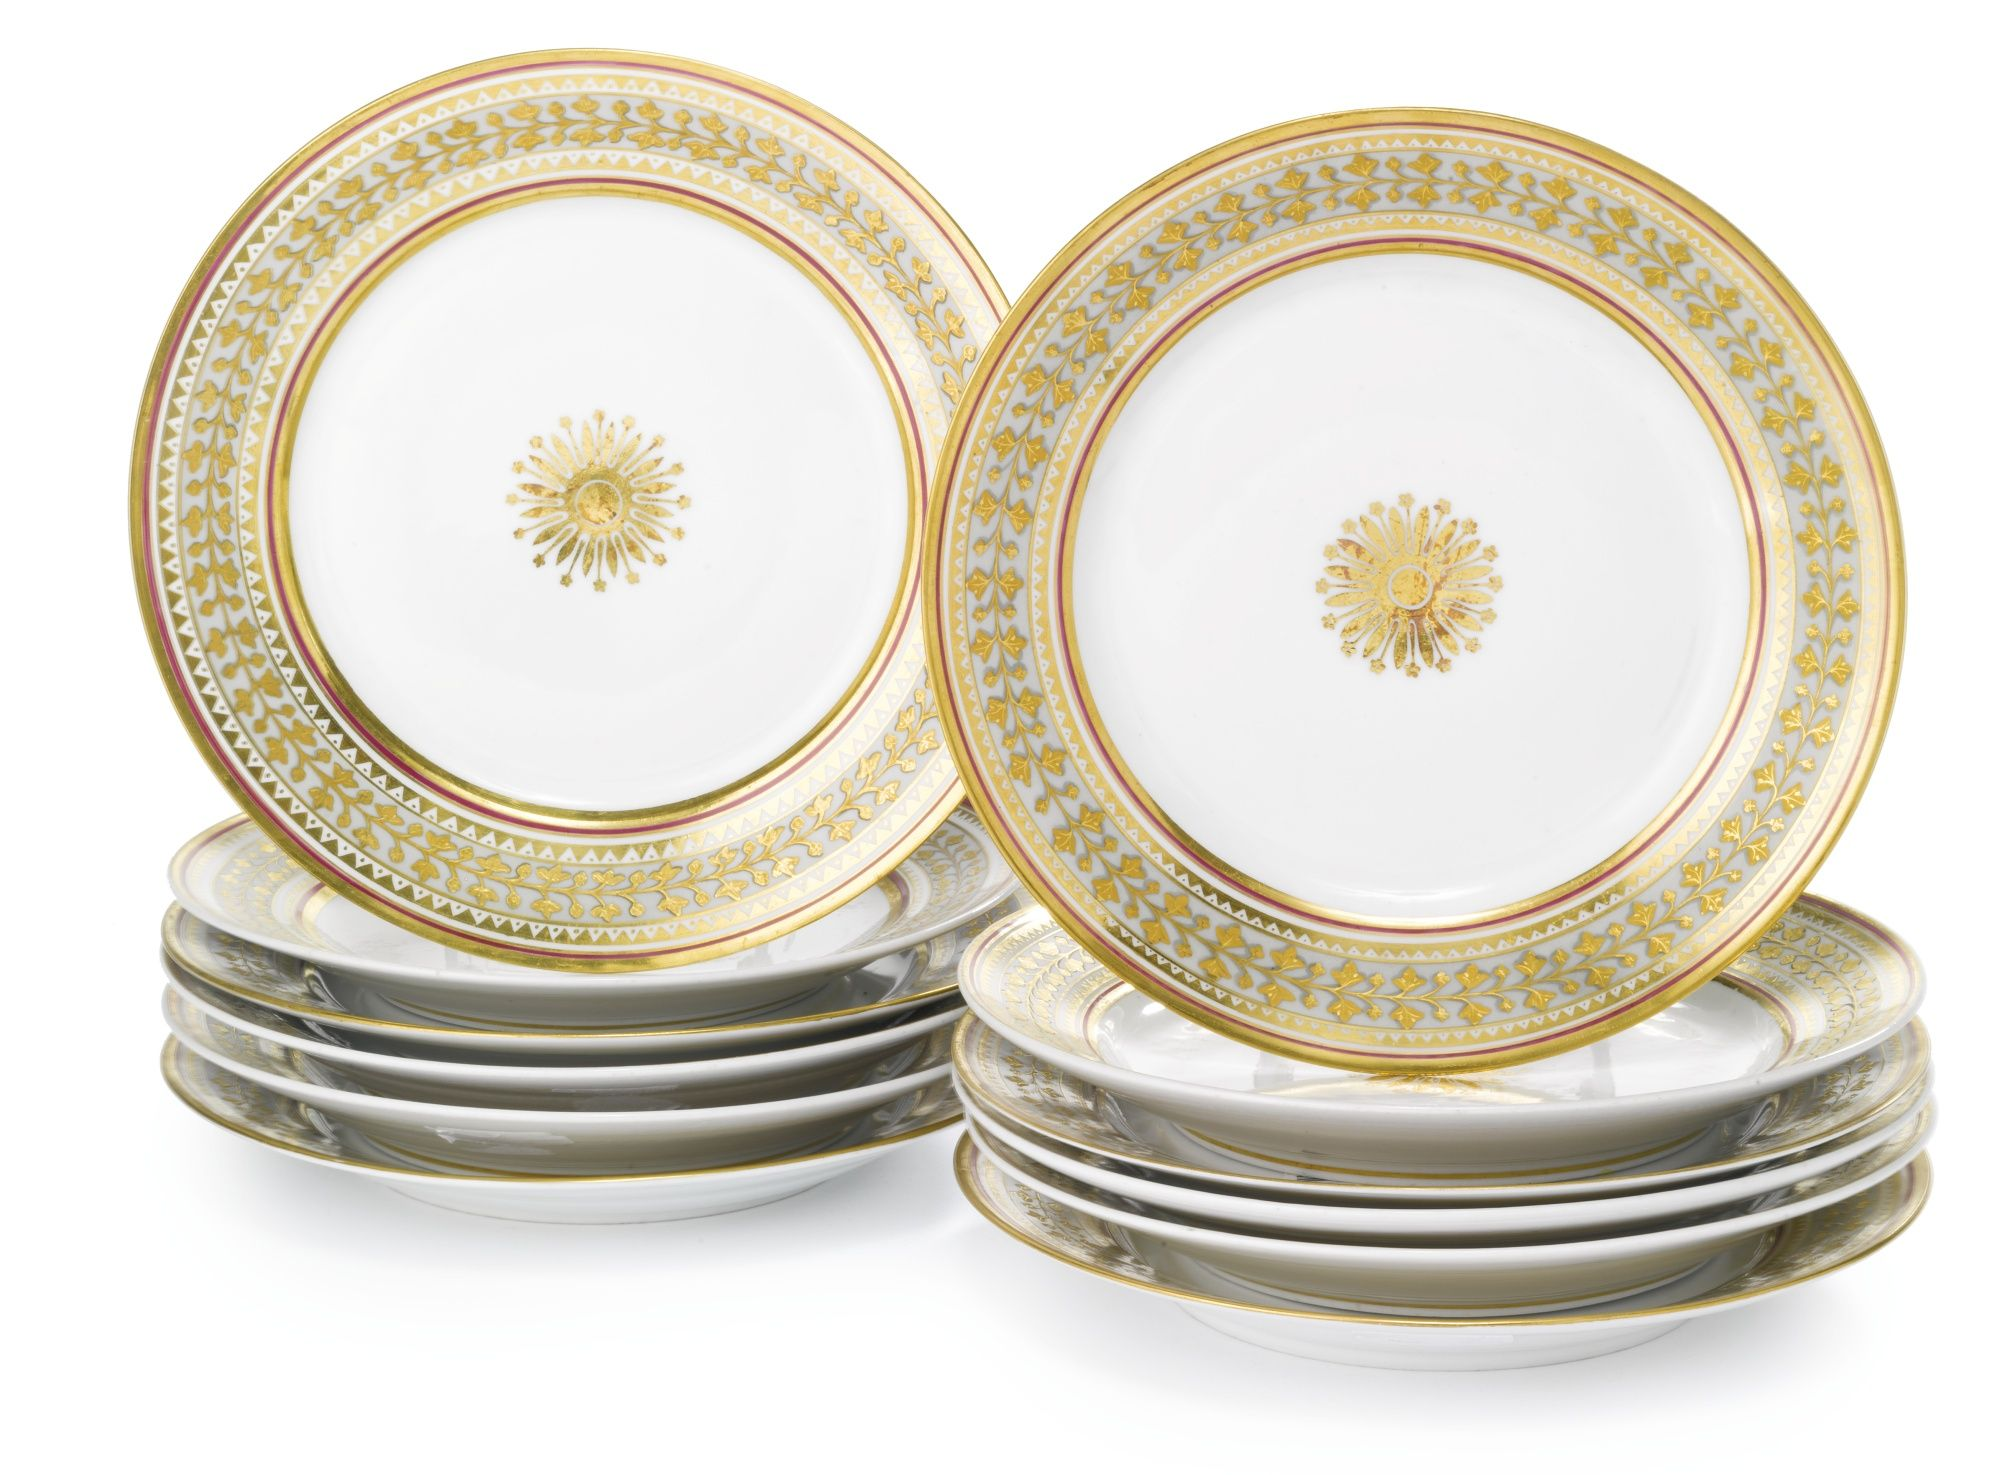 A Set Of Twelve Russian Porcelain Dinner Plates From The Babygon